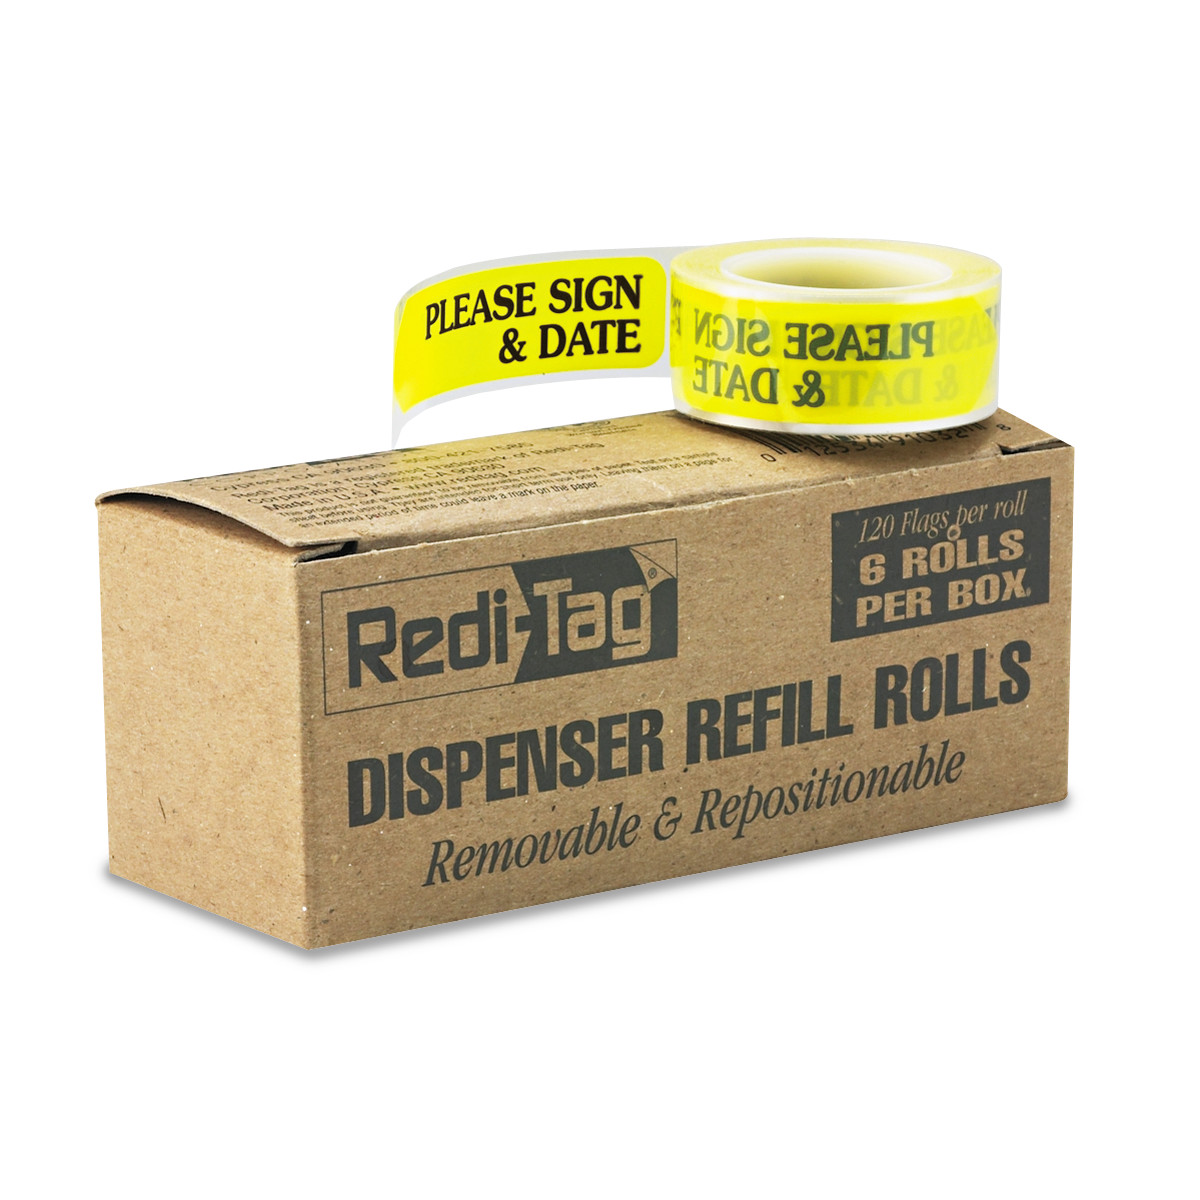 Redi-Tag Arrow Message Flag Refills Please Sign & Date Yellow 120/Roll 6pk RTG91032